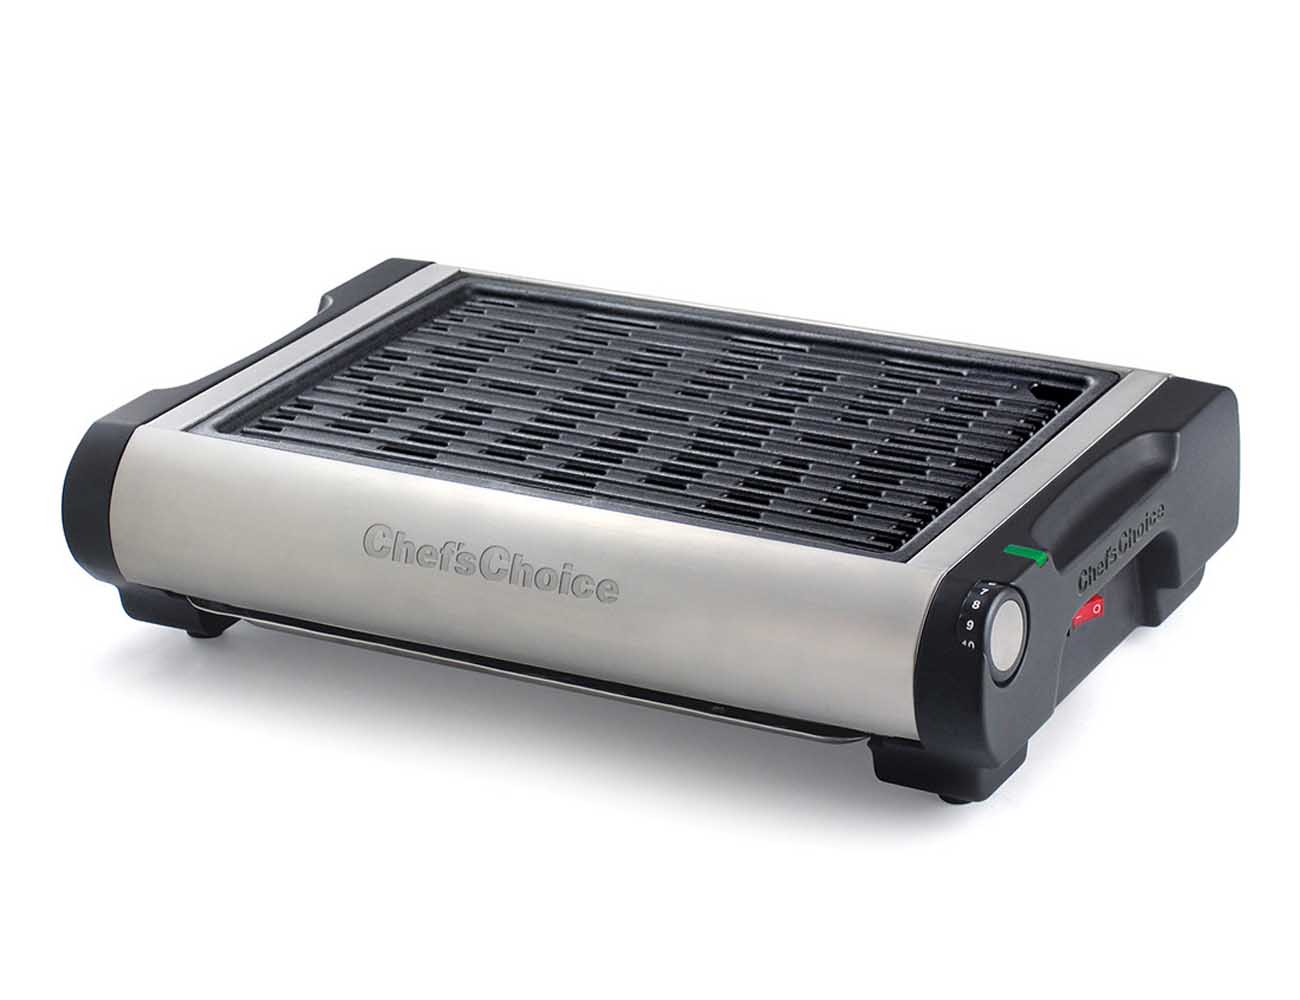 Chef's Choice Professional Electric Grill